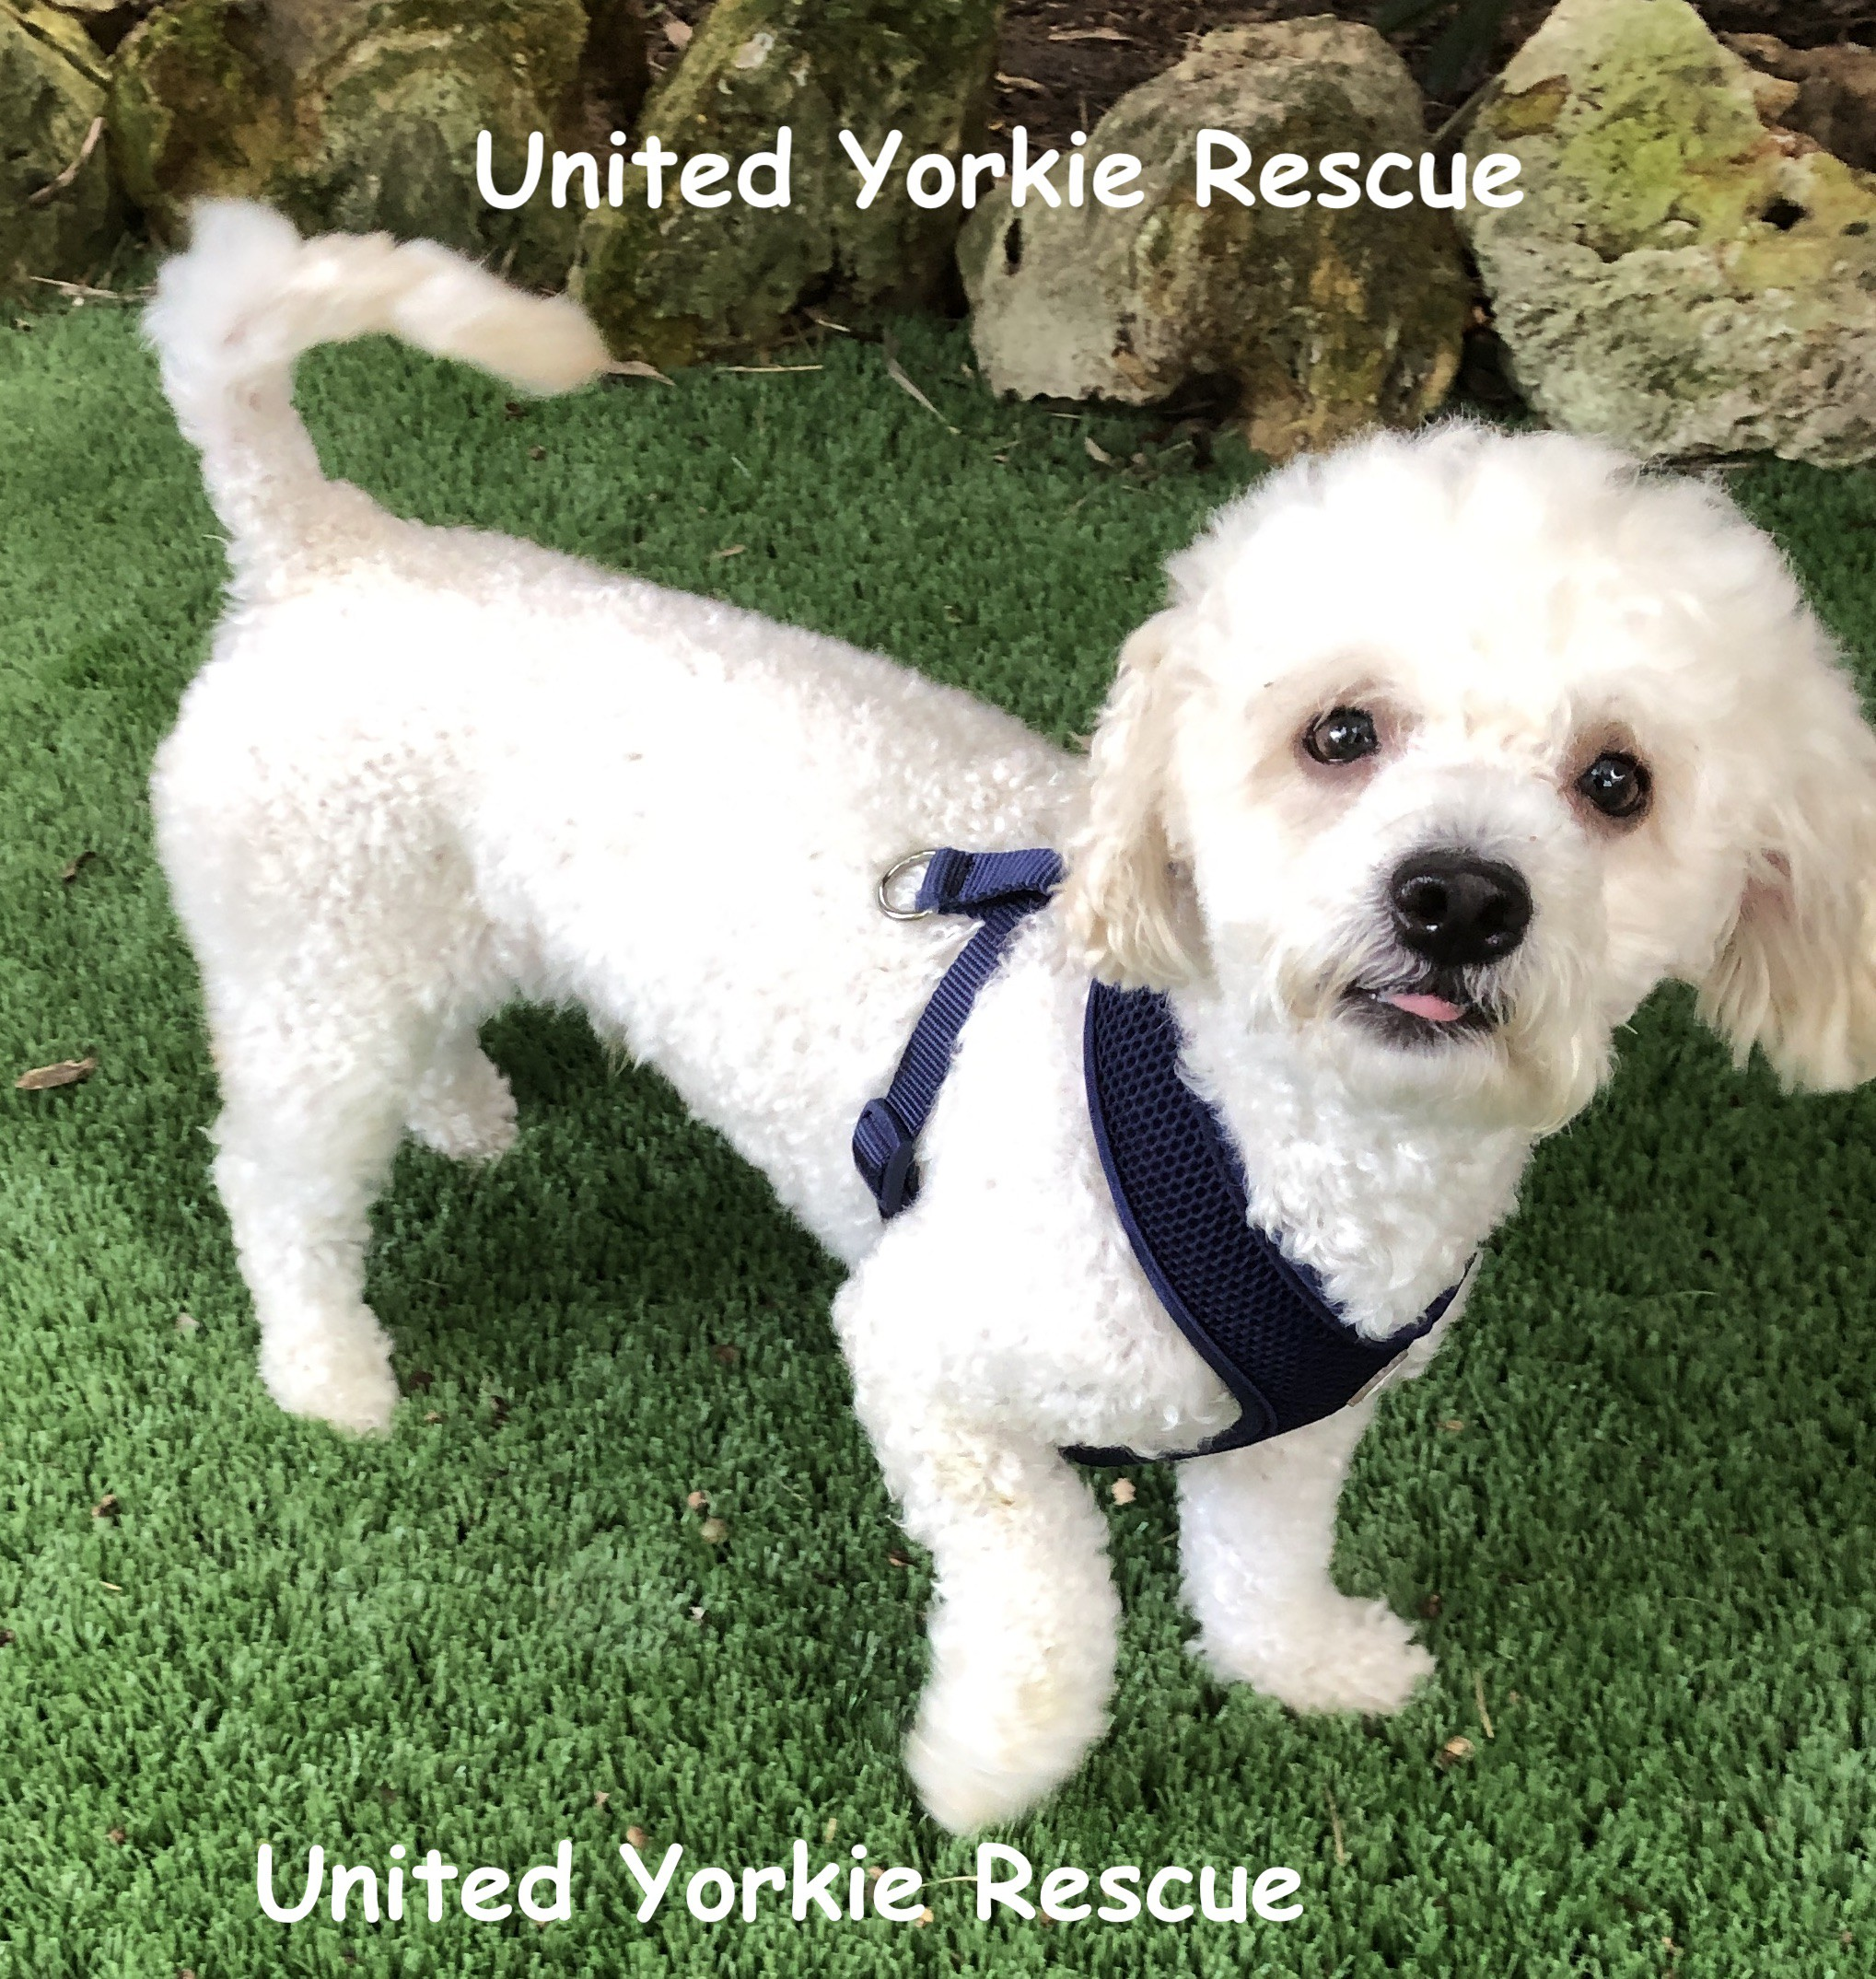 Leesburg Fl Miniature Poodle Meet Teddy Bear A Pet For Adoption